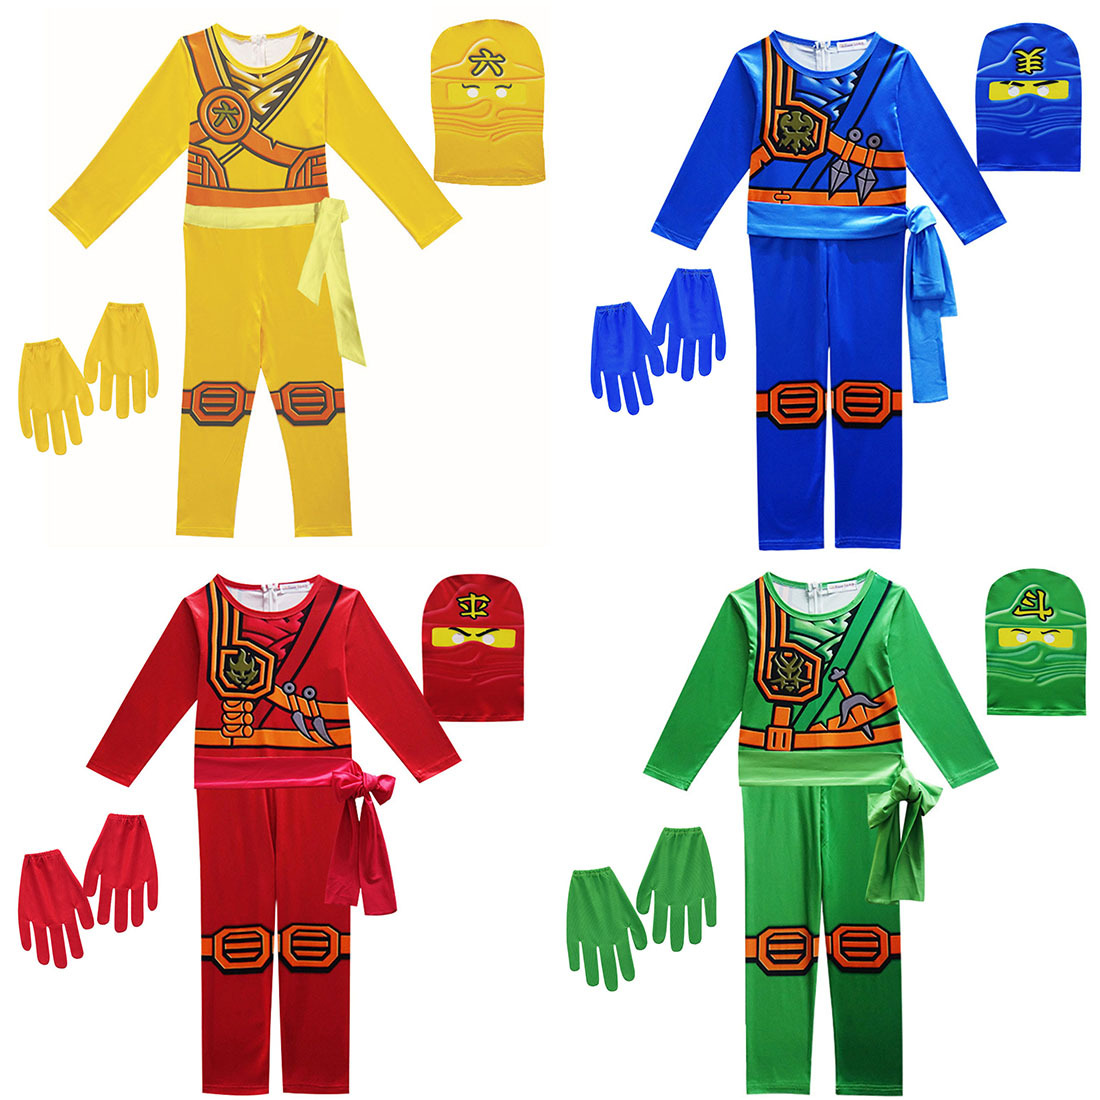 2019 LEGO NINJAGO Role Cosplay Costume Halloween Boys Girls Jumpsuit Set Ninja Halloween Christmas Funny Party Clothing For Boy